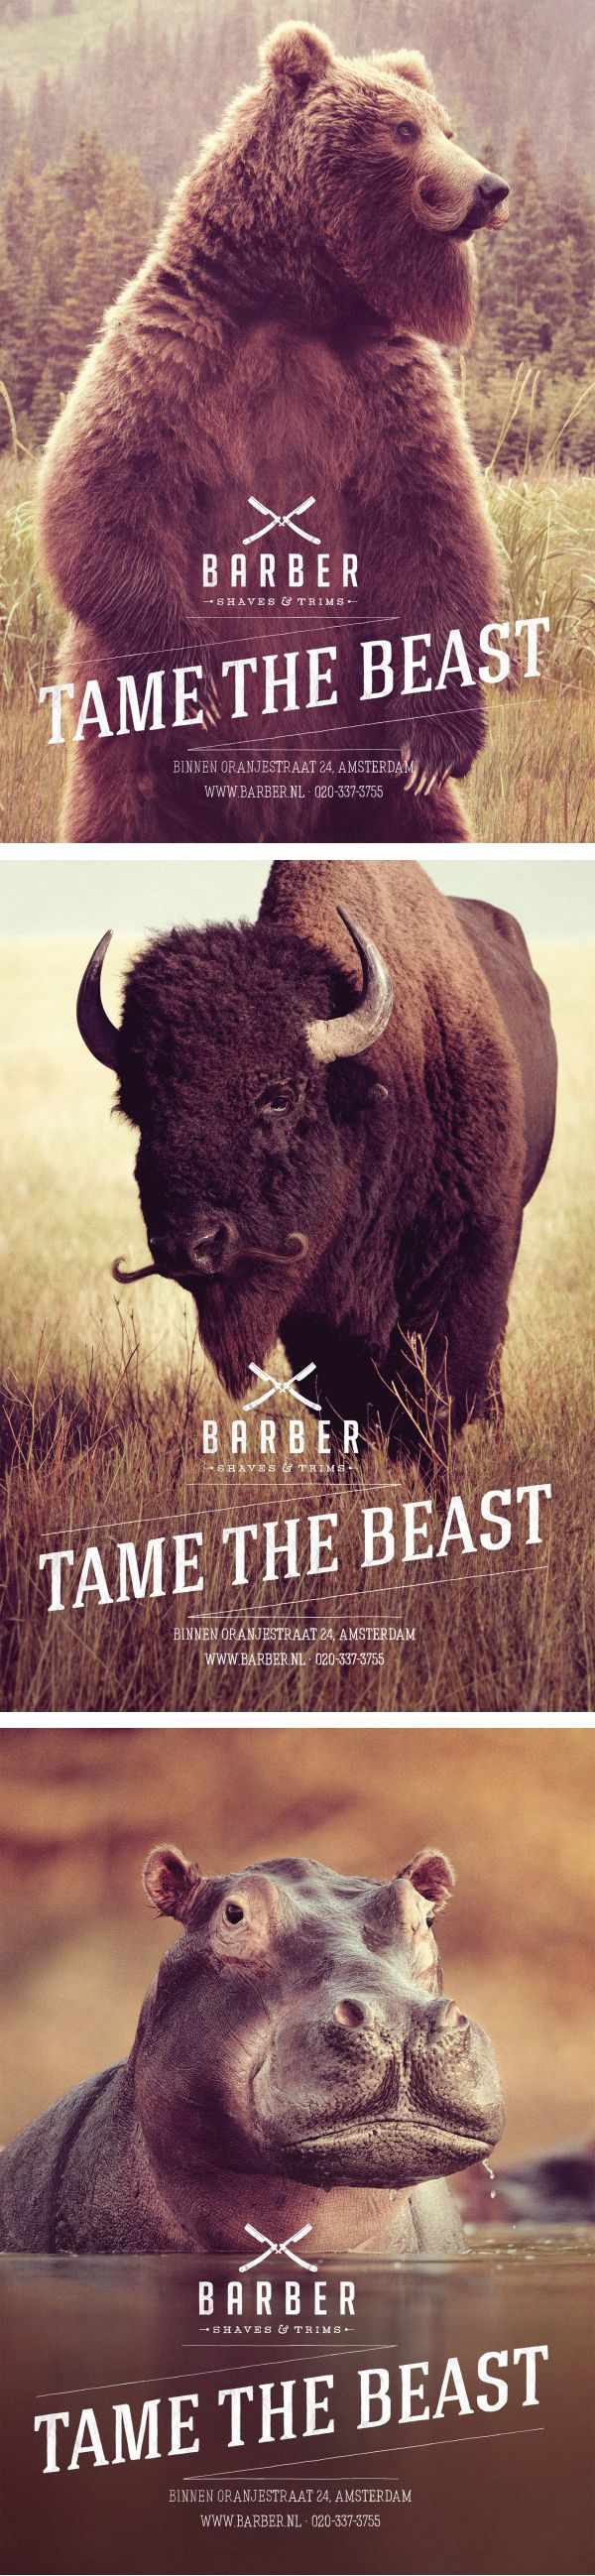 Publicité - Creative advertising campaign - Barber by 180 Amsterdam - Tame the beast  I laughed... I cried